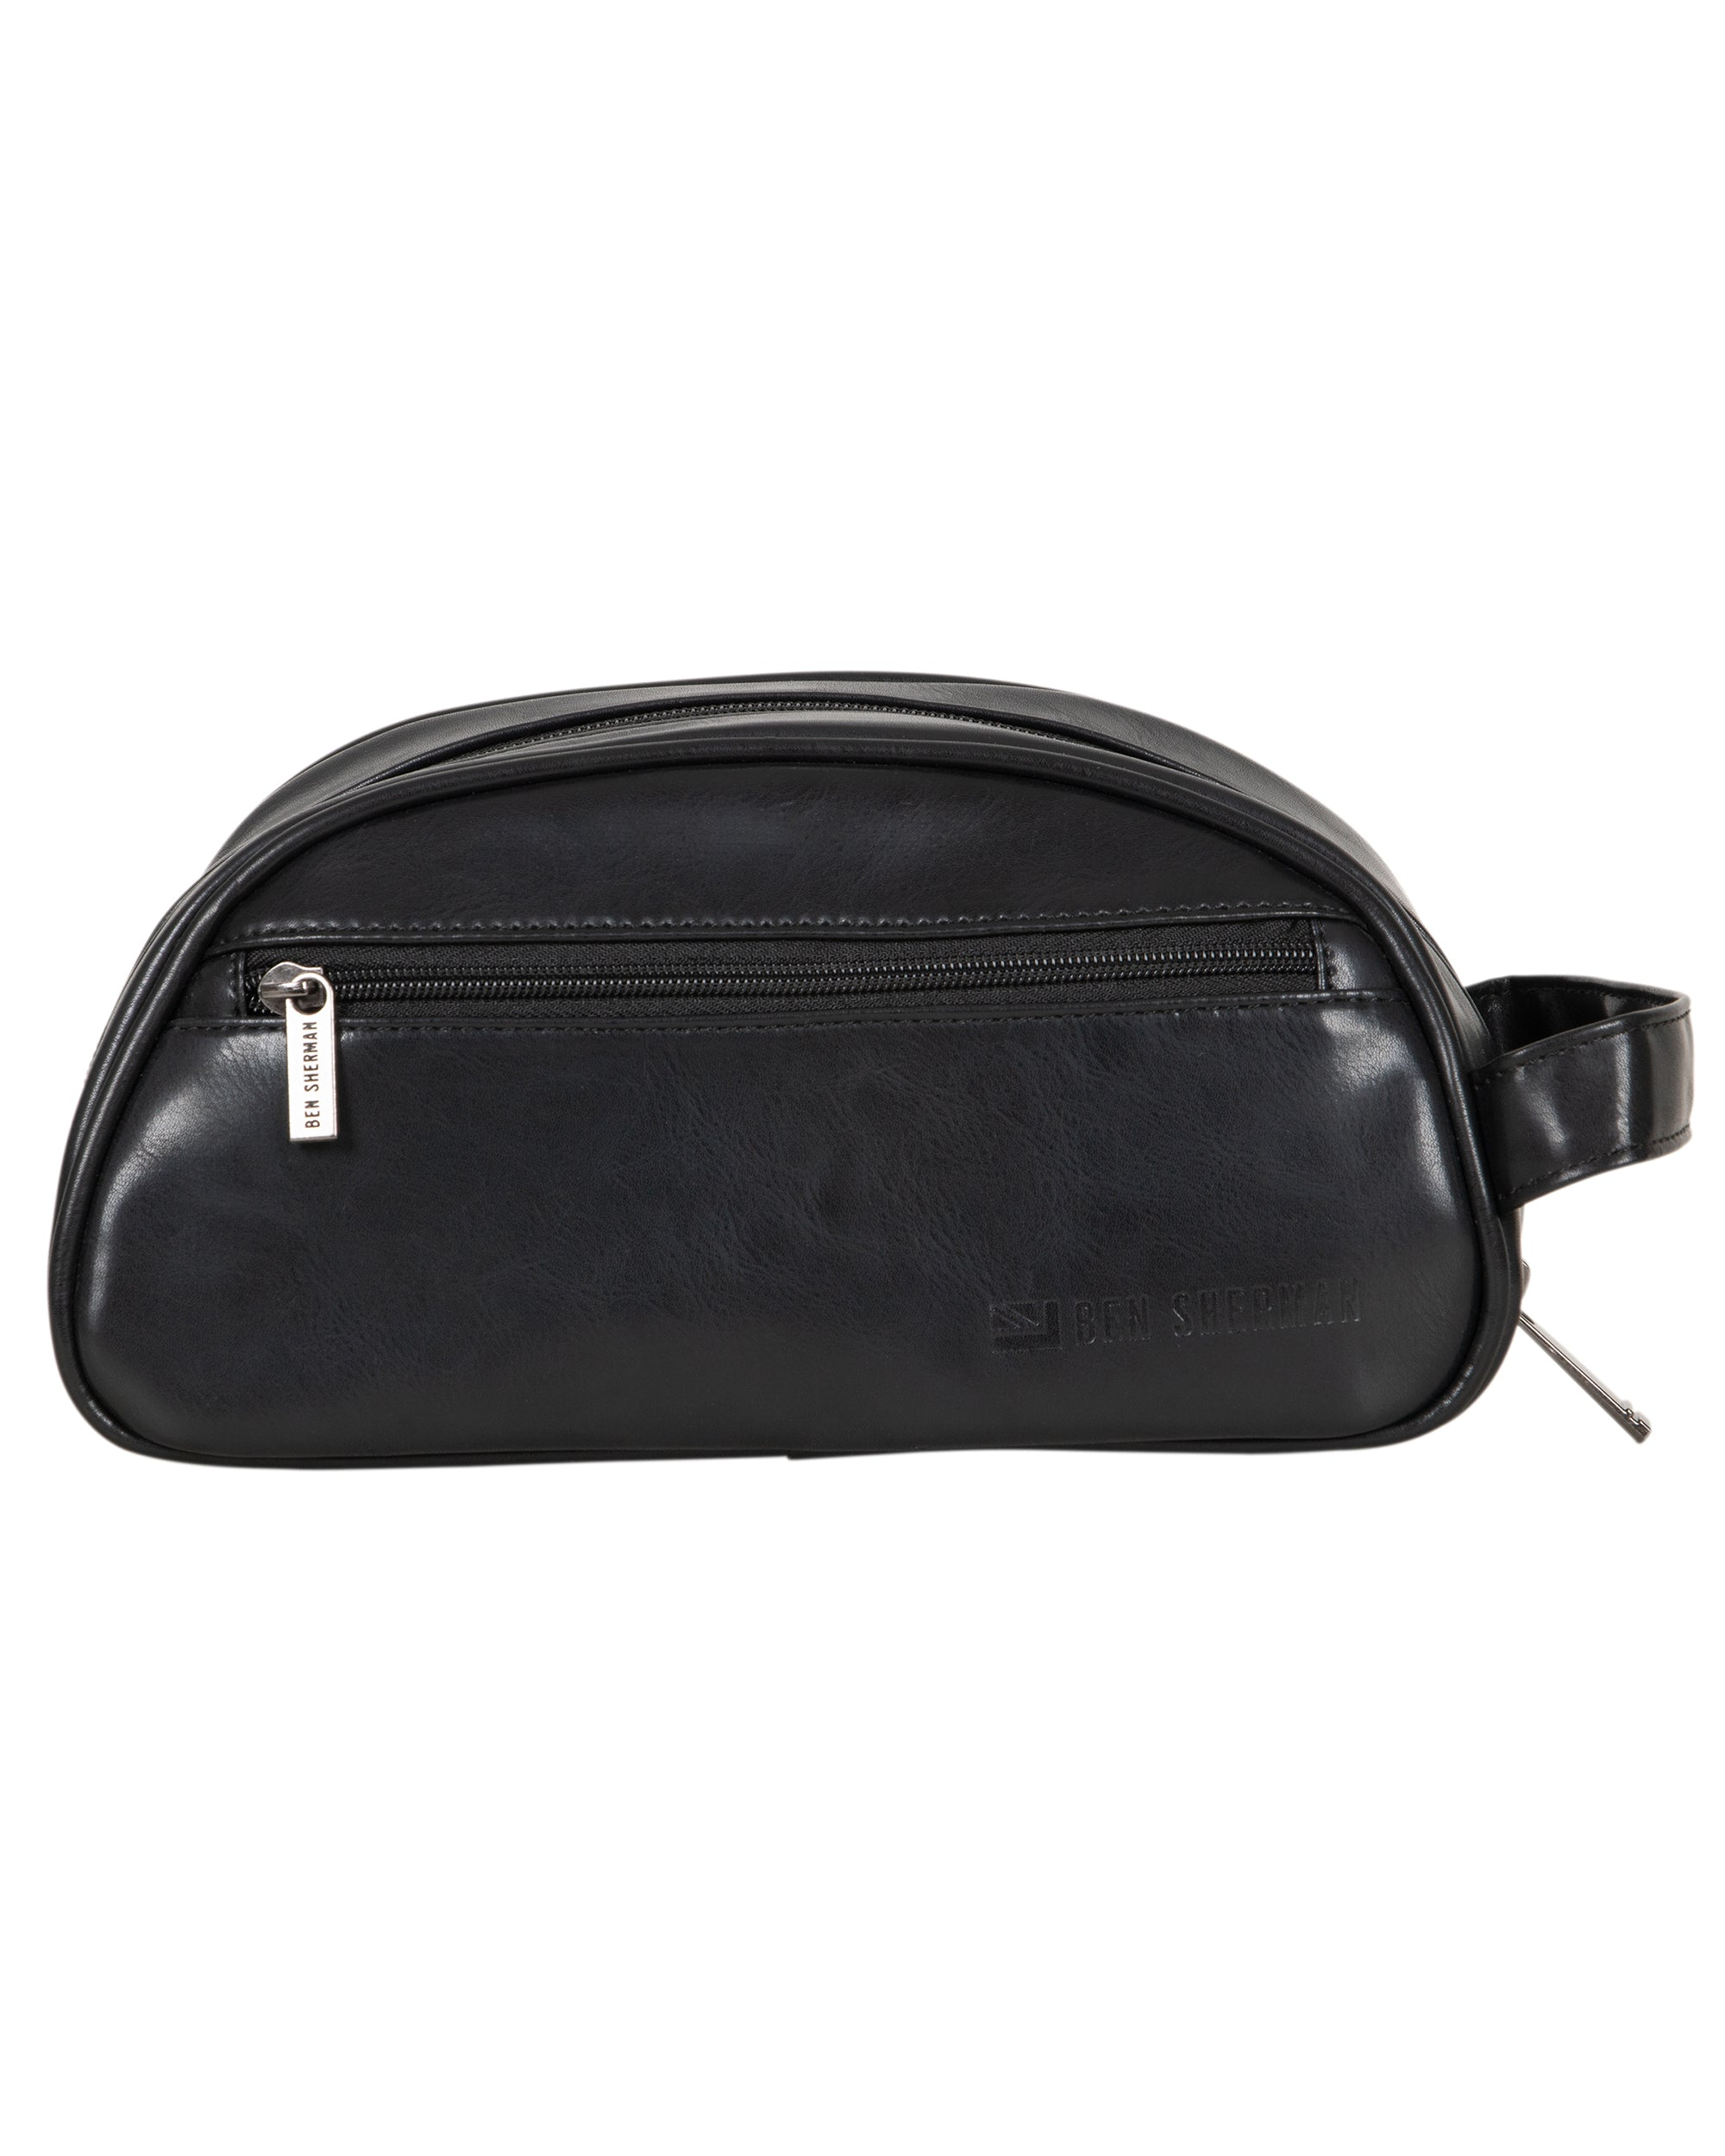 Top Zip Dome-Style Travel Dopp Kit - Black